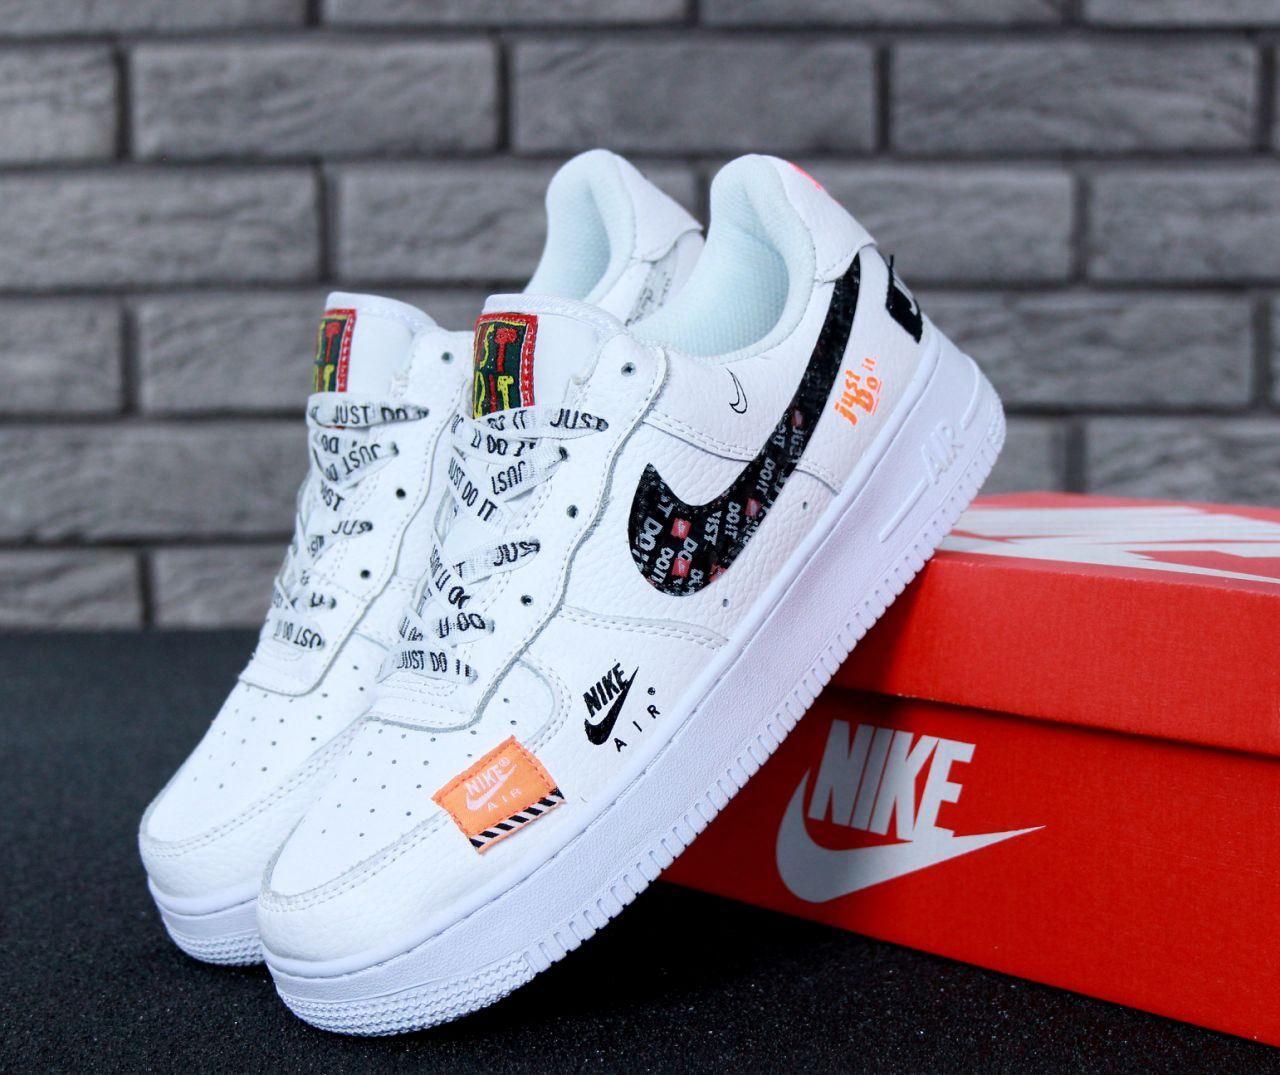 b98a969b55fe7d Мужские кроссовки Nike Air Force 1 Low Just Do It Pack White/ реплика -  sportsway